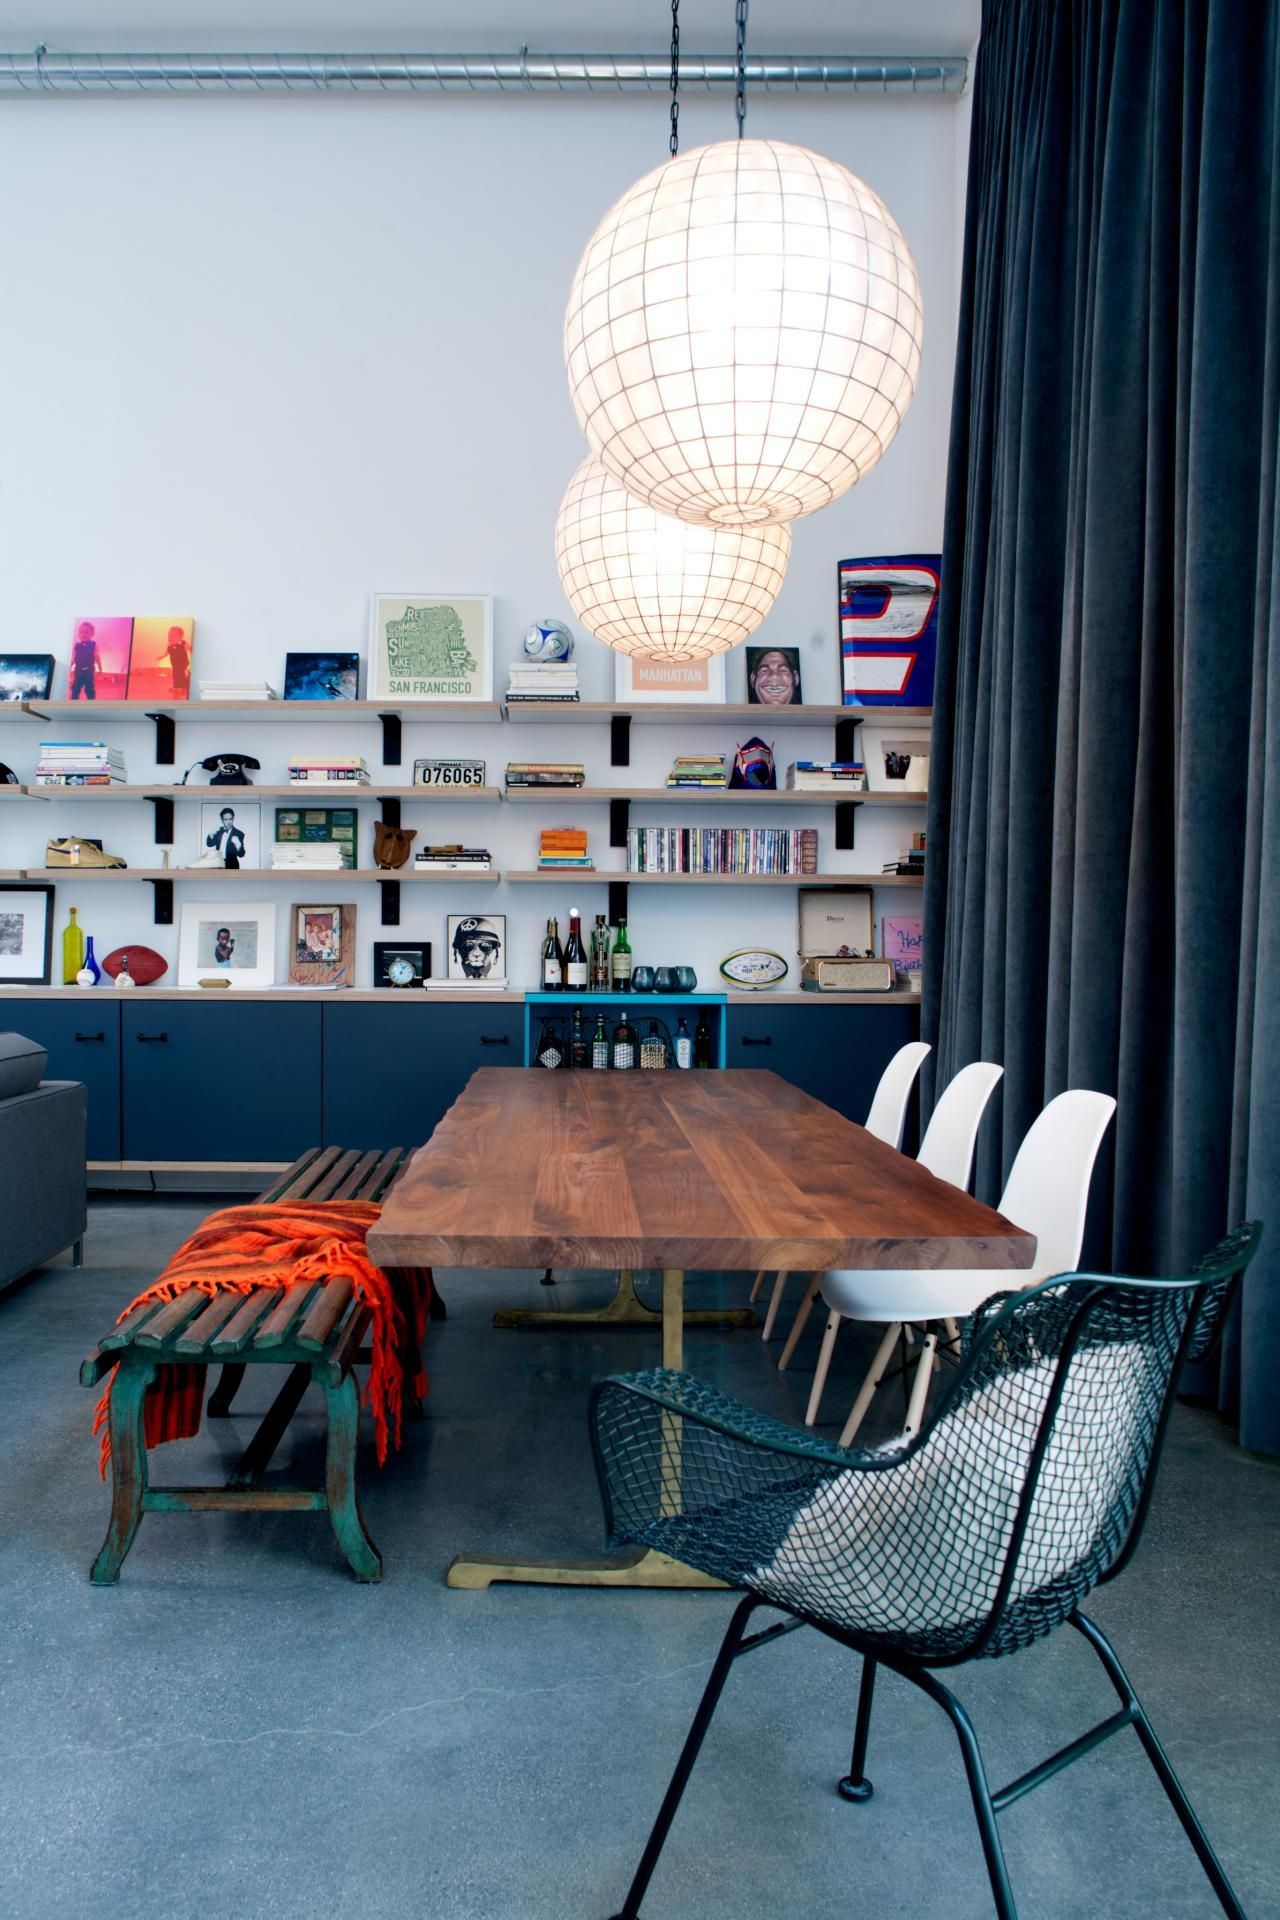 Check Out Home Decor Trends 2015. Want to get out of a home decor rut in 2015? See the latest design looks by our favorite tastemakers and get tips on how to incorporate top current trends in your own space.